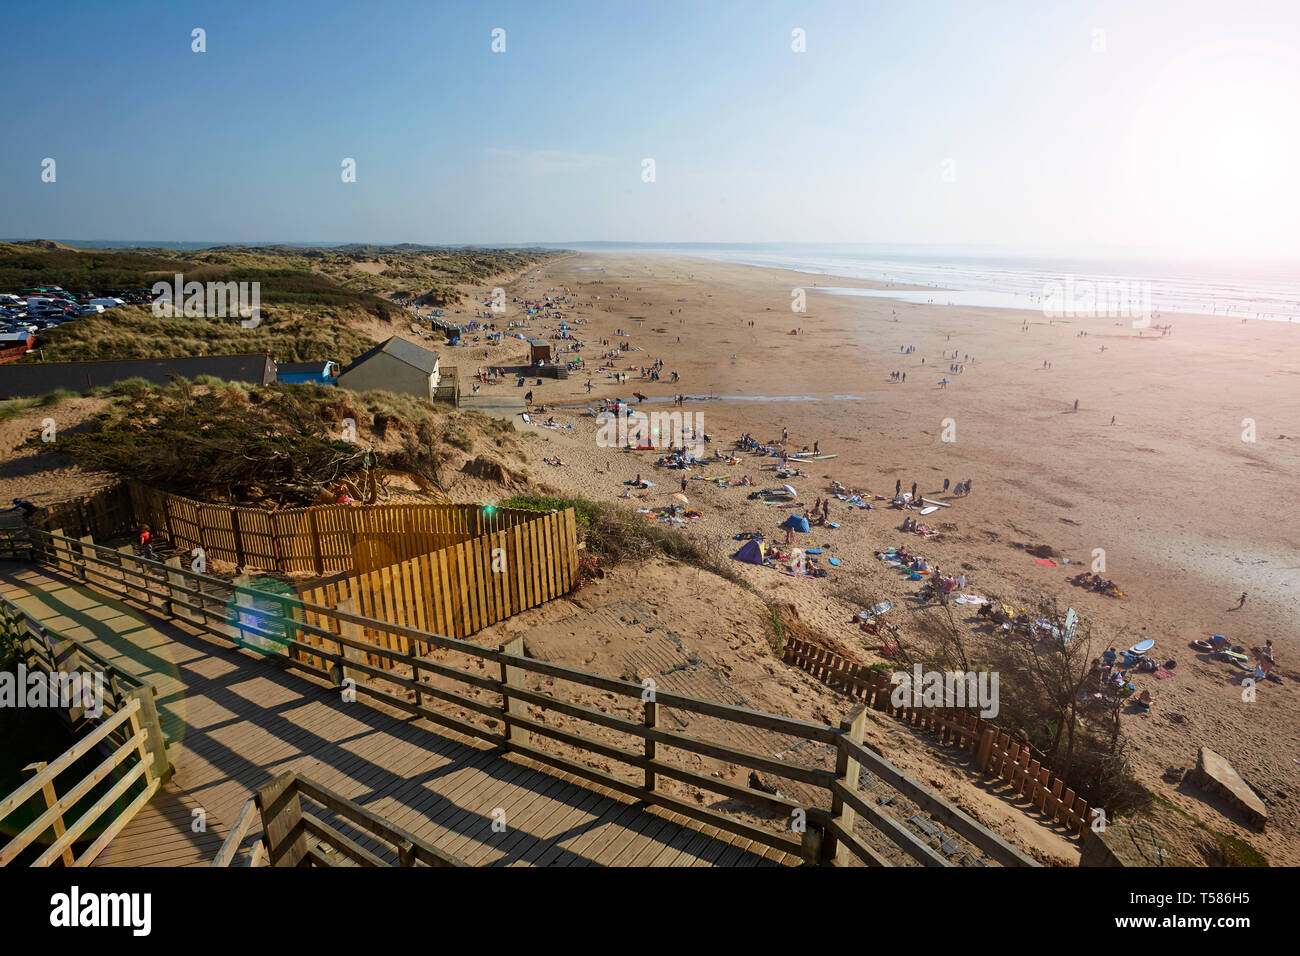 Tourists on Saunton Sands beach in North Devon during Easter 2019 heat wave with board walk in foreground - Stock Image